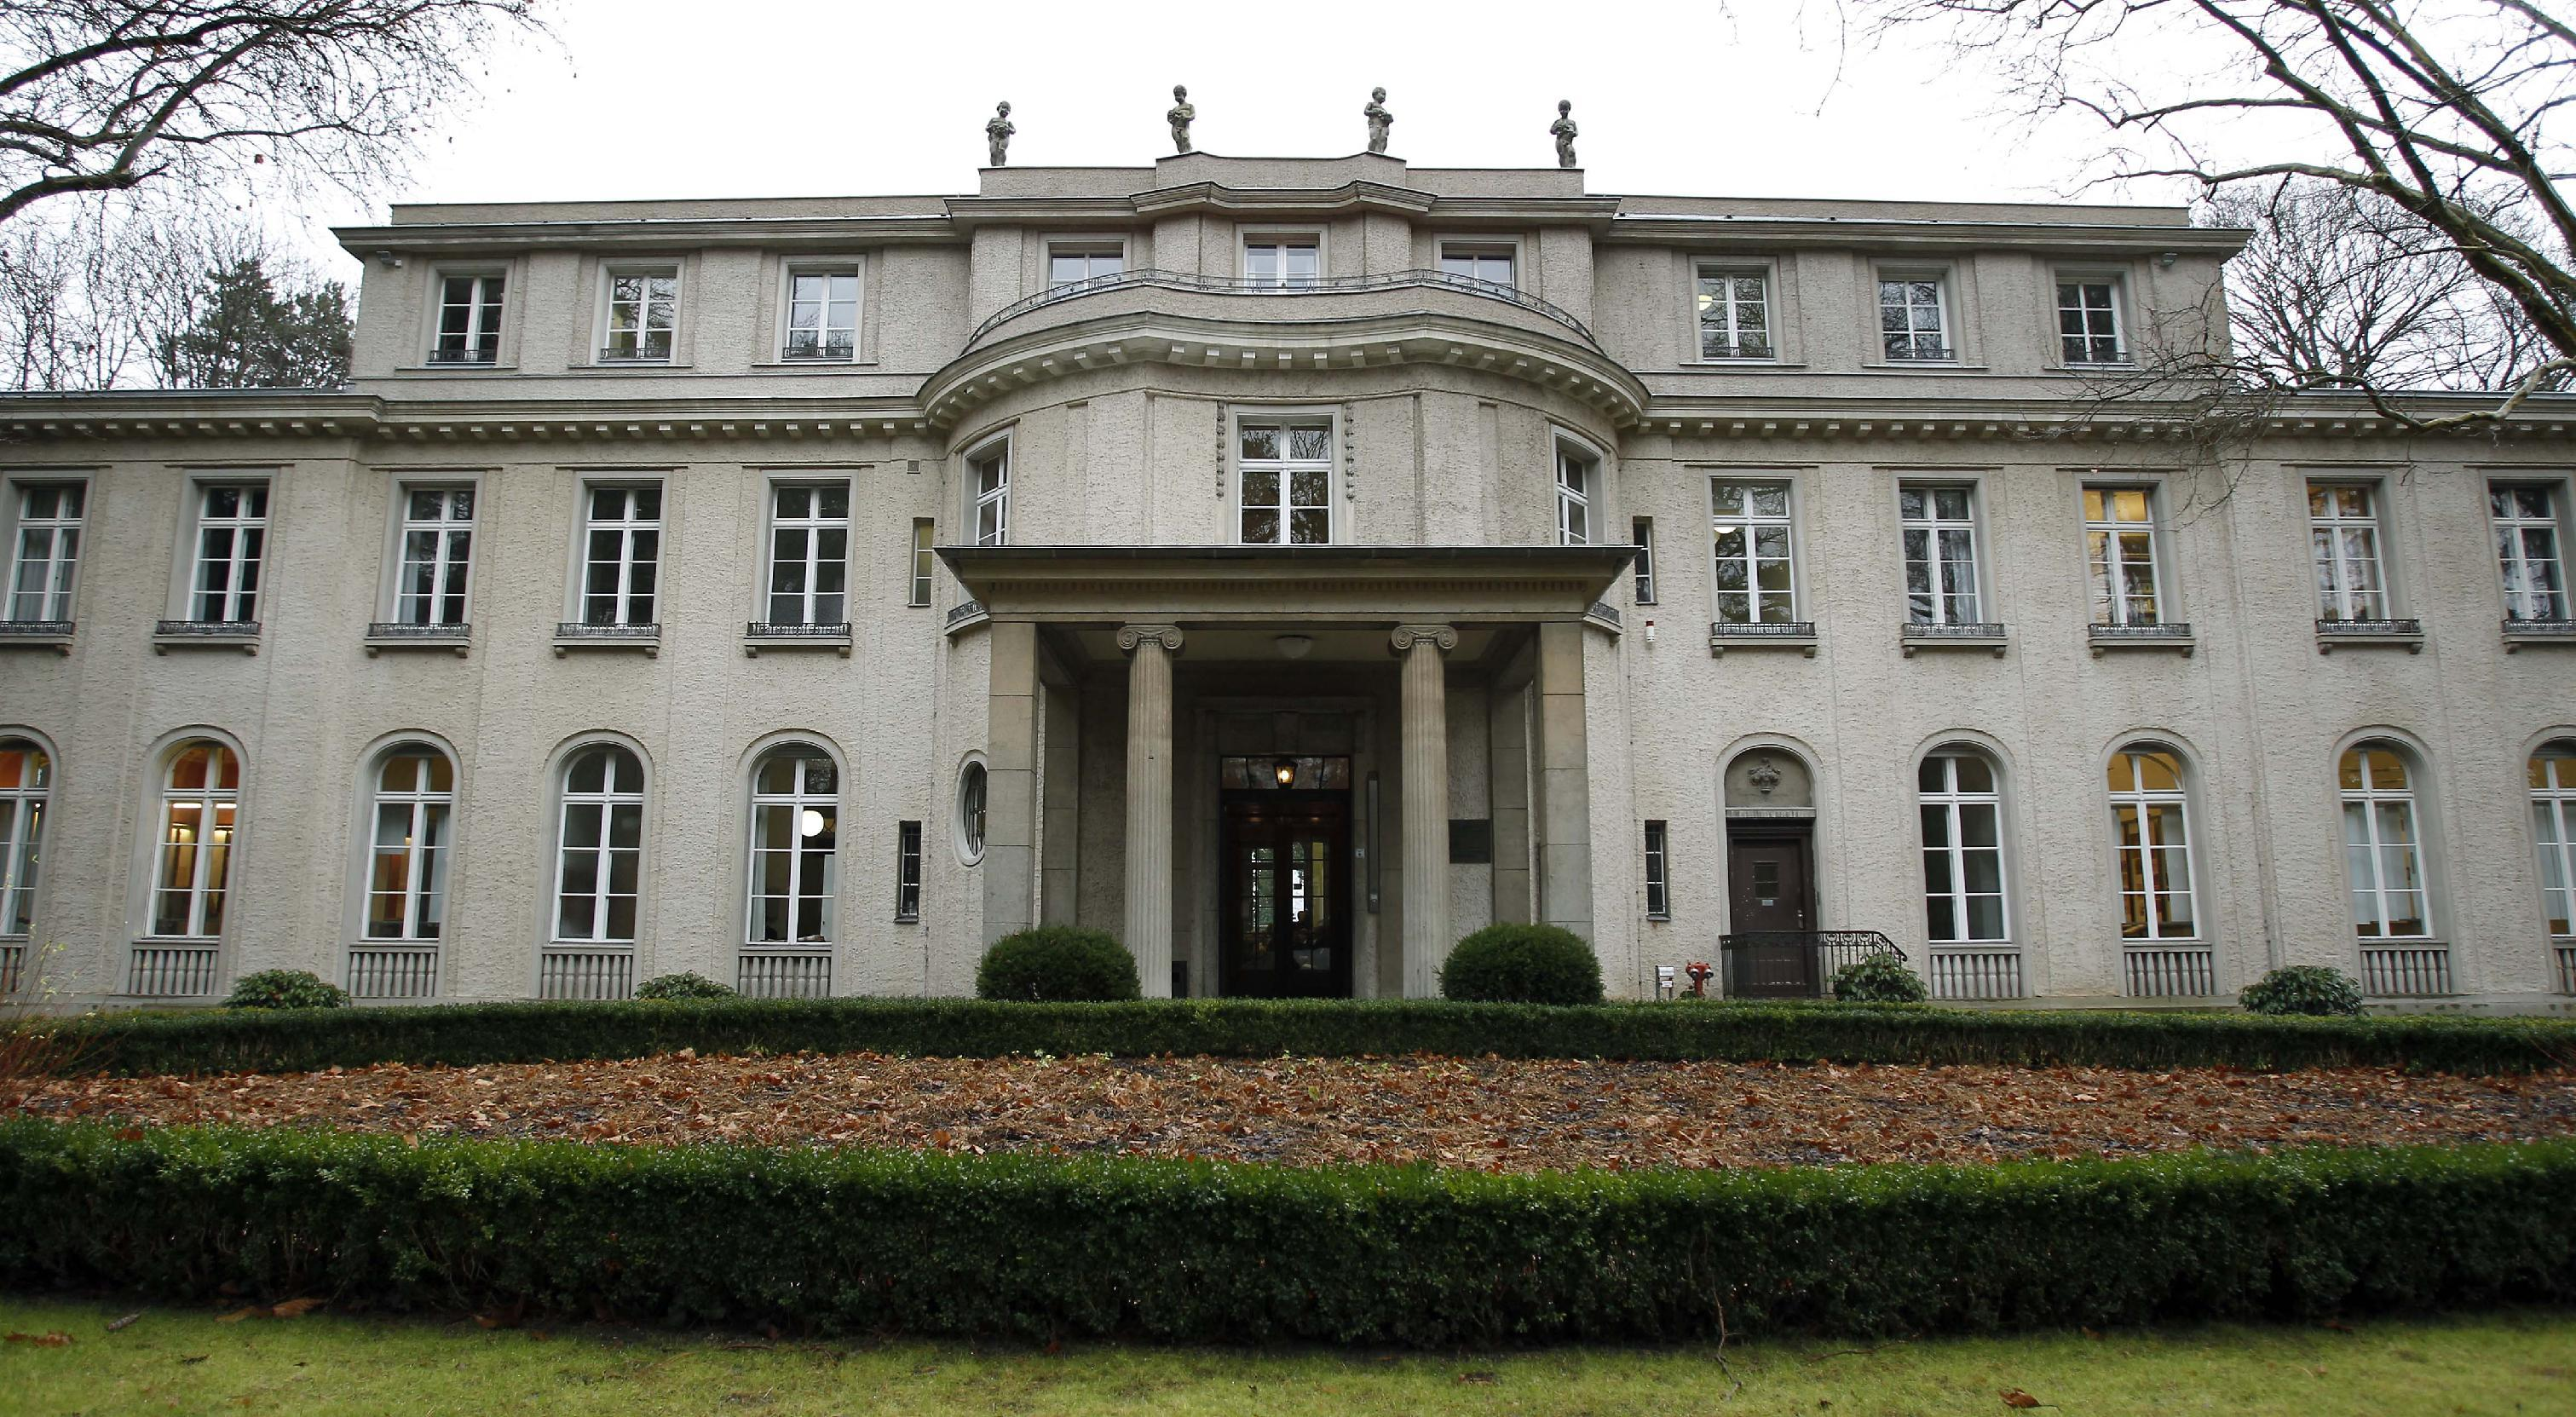 Germany marks 70 years since wannsee conference